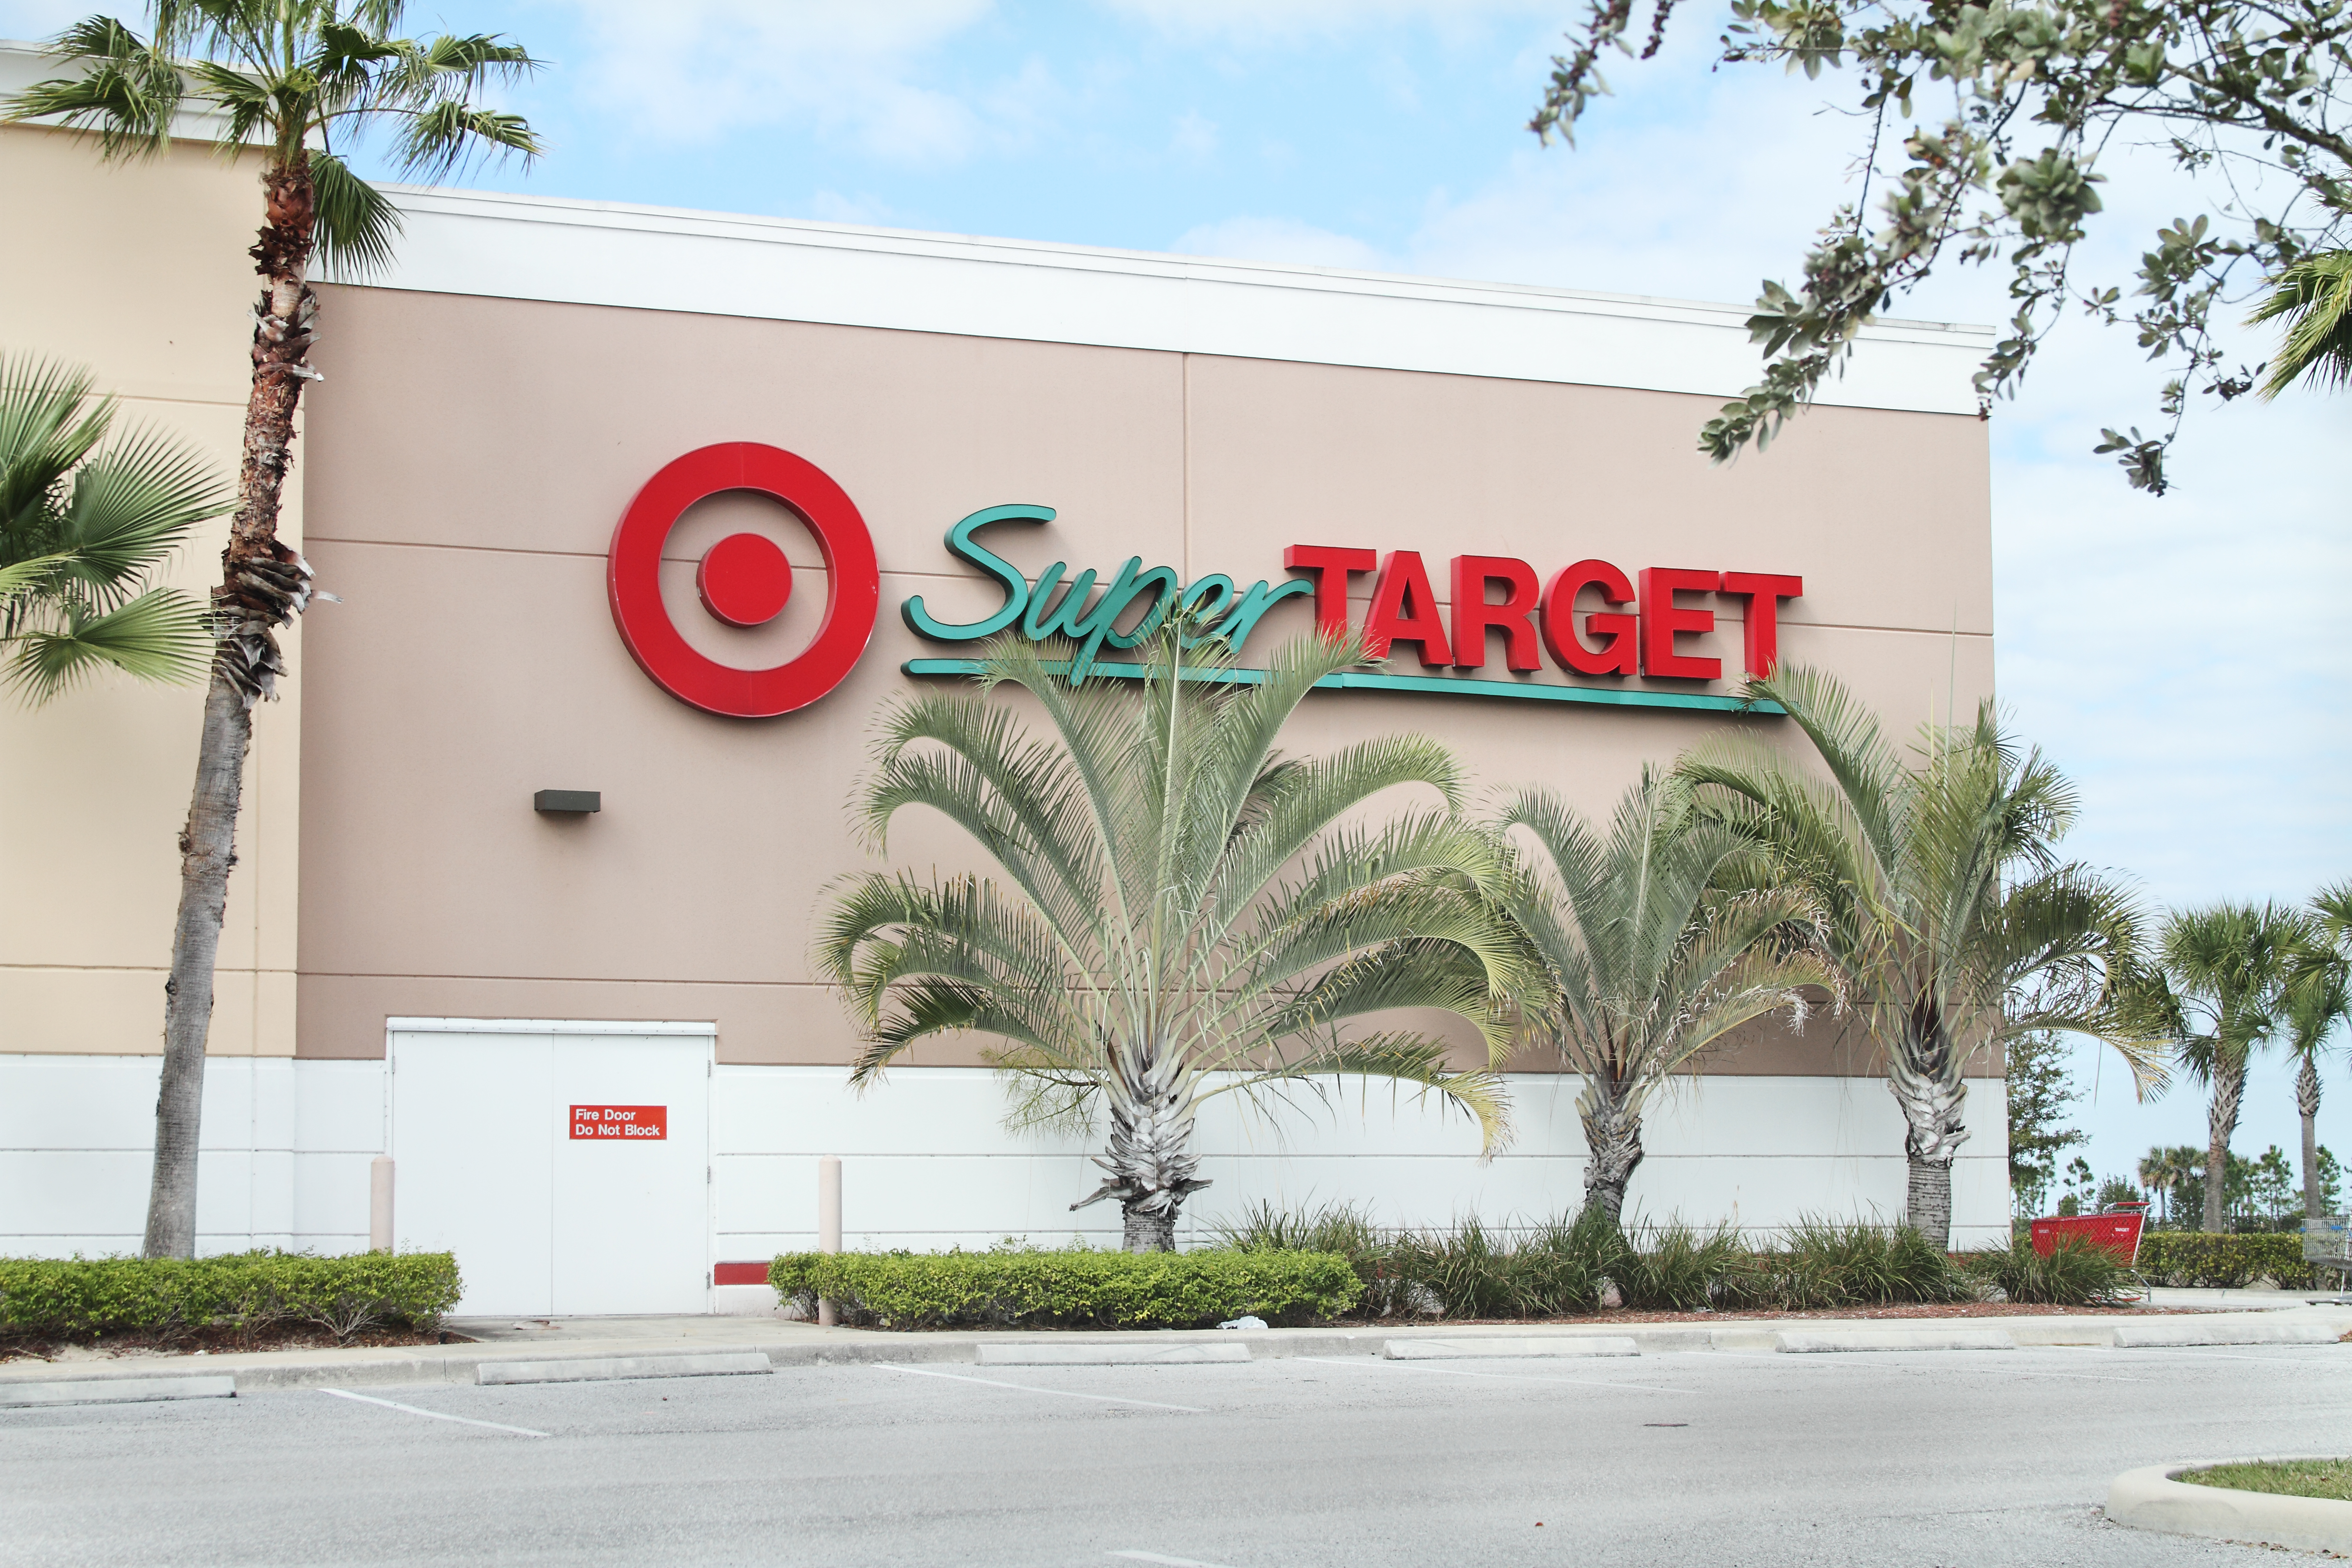 A Super Target retail store in West Palm Beach, Florida.